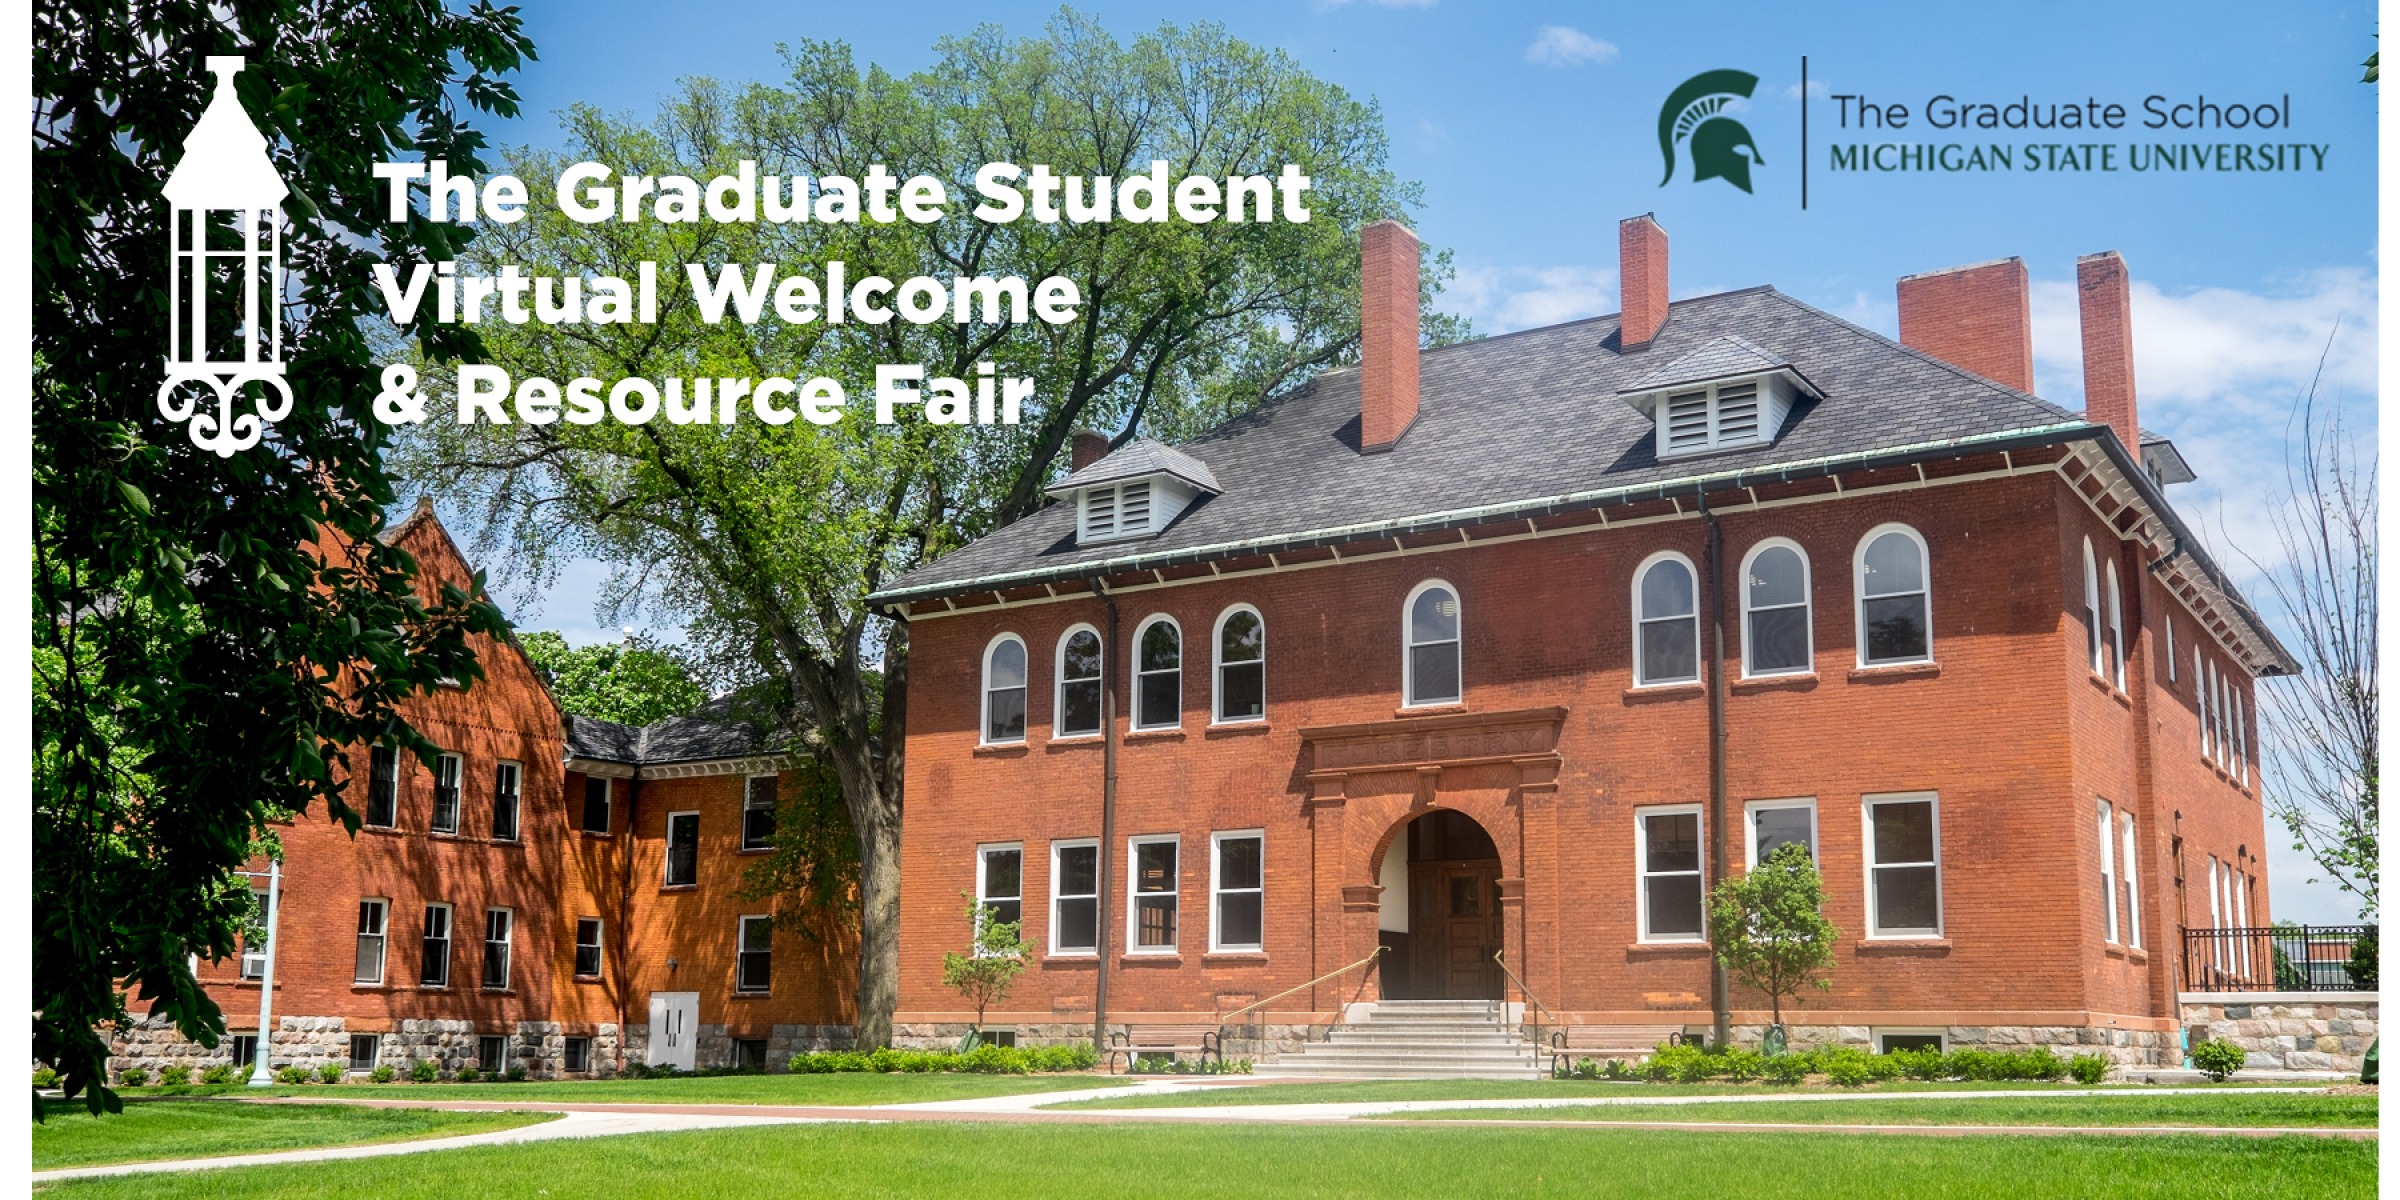 The Graduate Student Welcome and Resource Fair. Image of Chittenden Hall